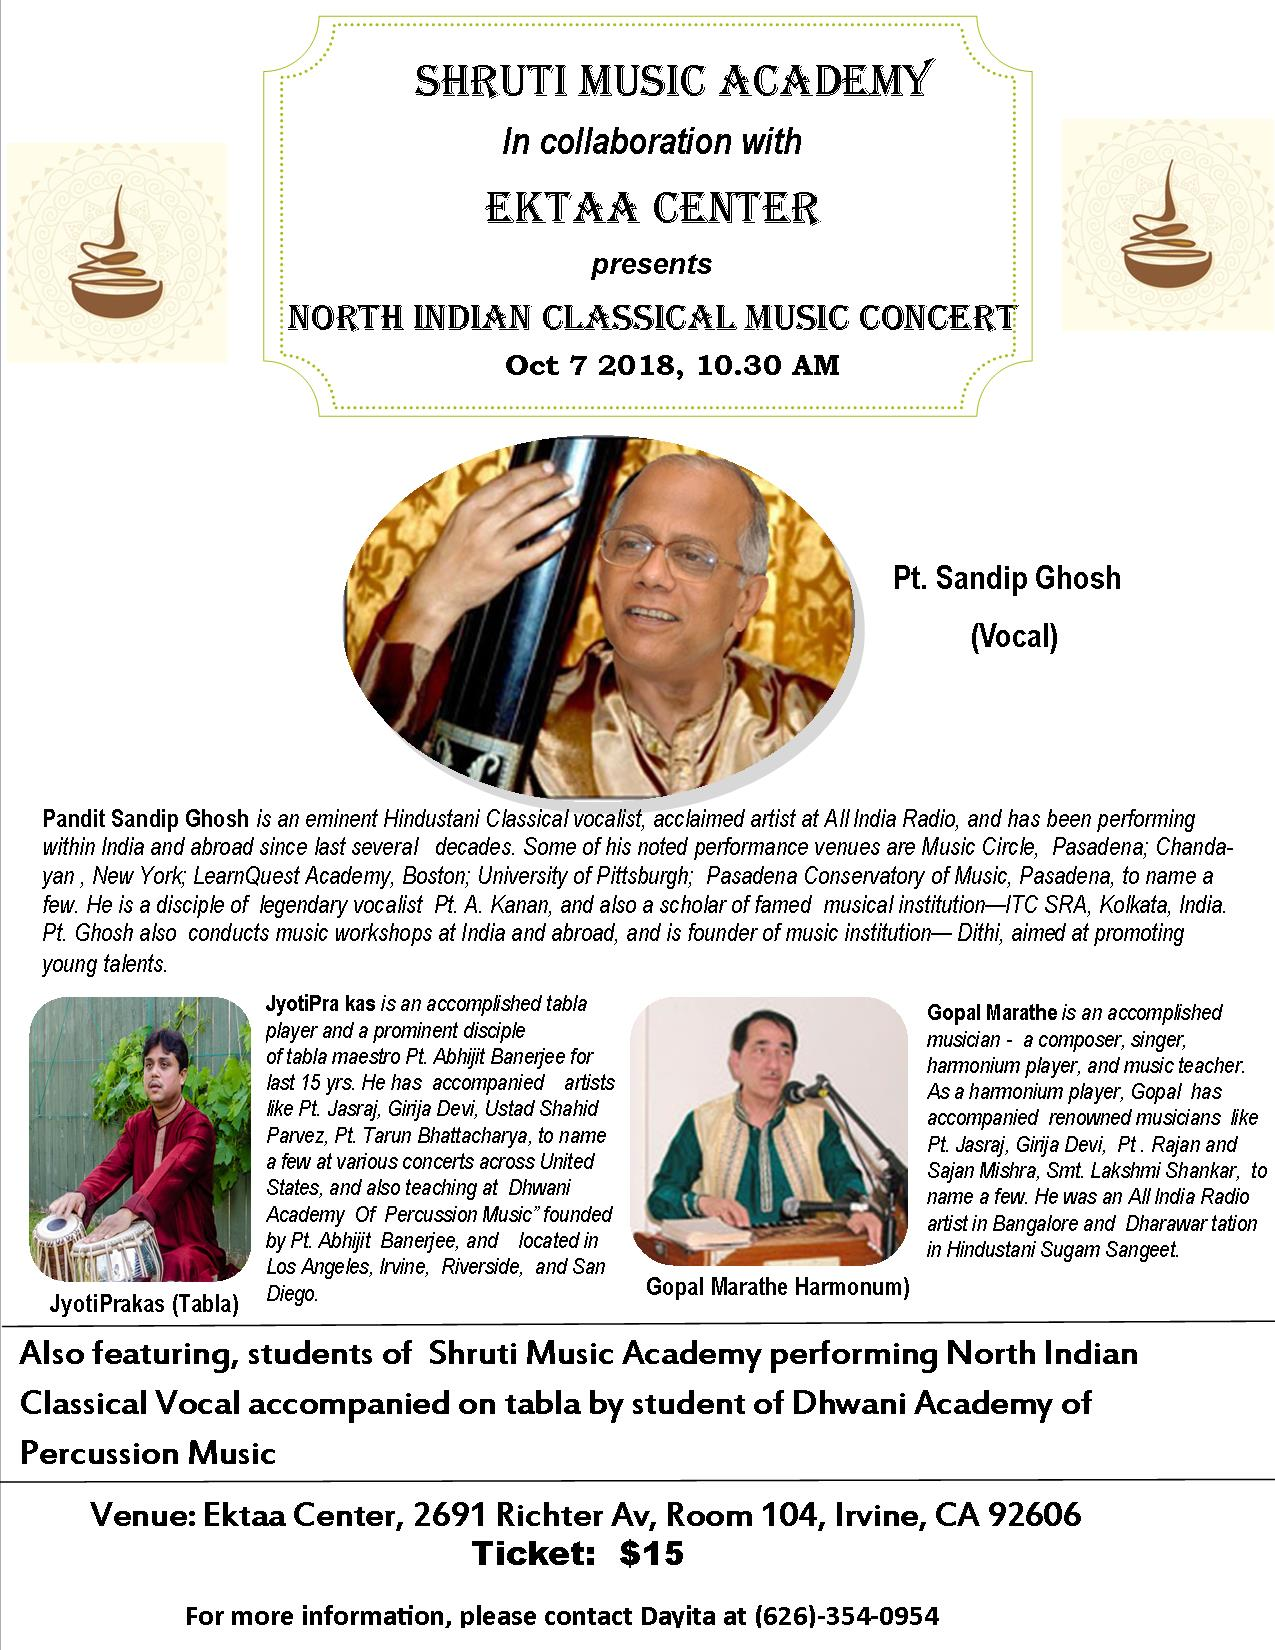 North Indian Classical Music Concert